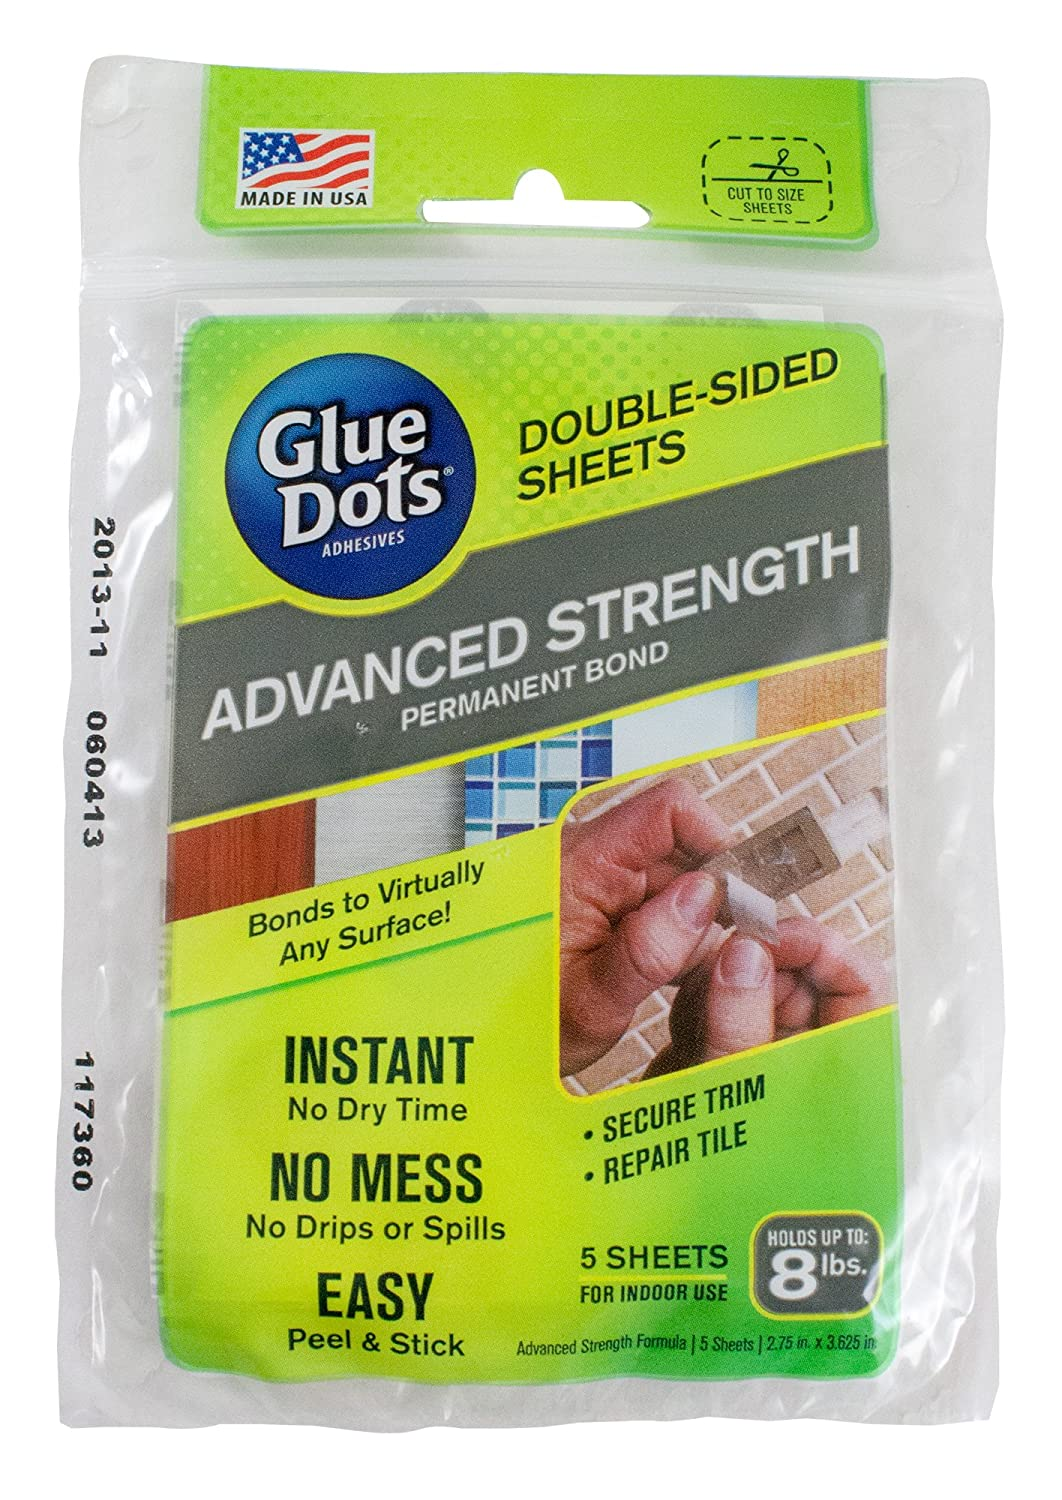 Amazon.com: Glue Dots Advanced Strength Adhesive Sheets, Double ...